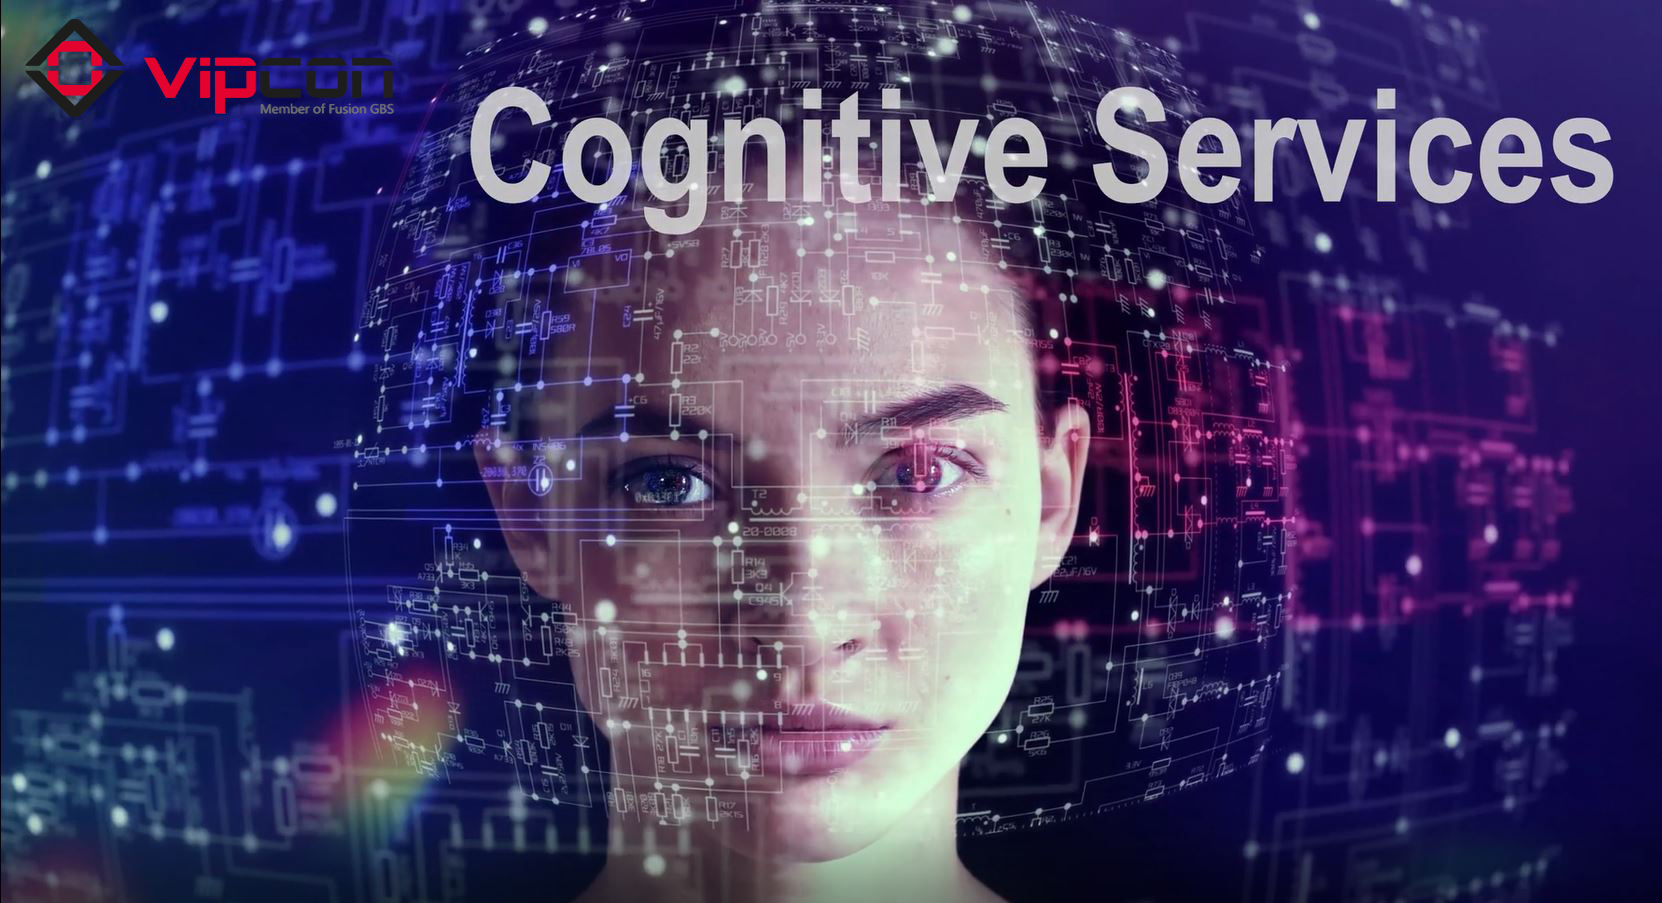 Cognitive_Services_rotes Logo.jpg